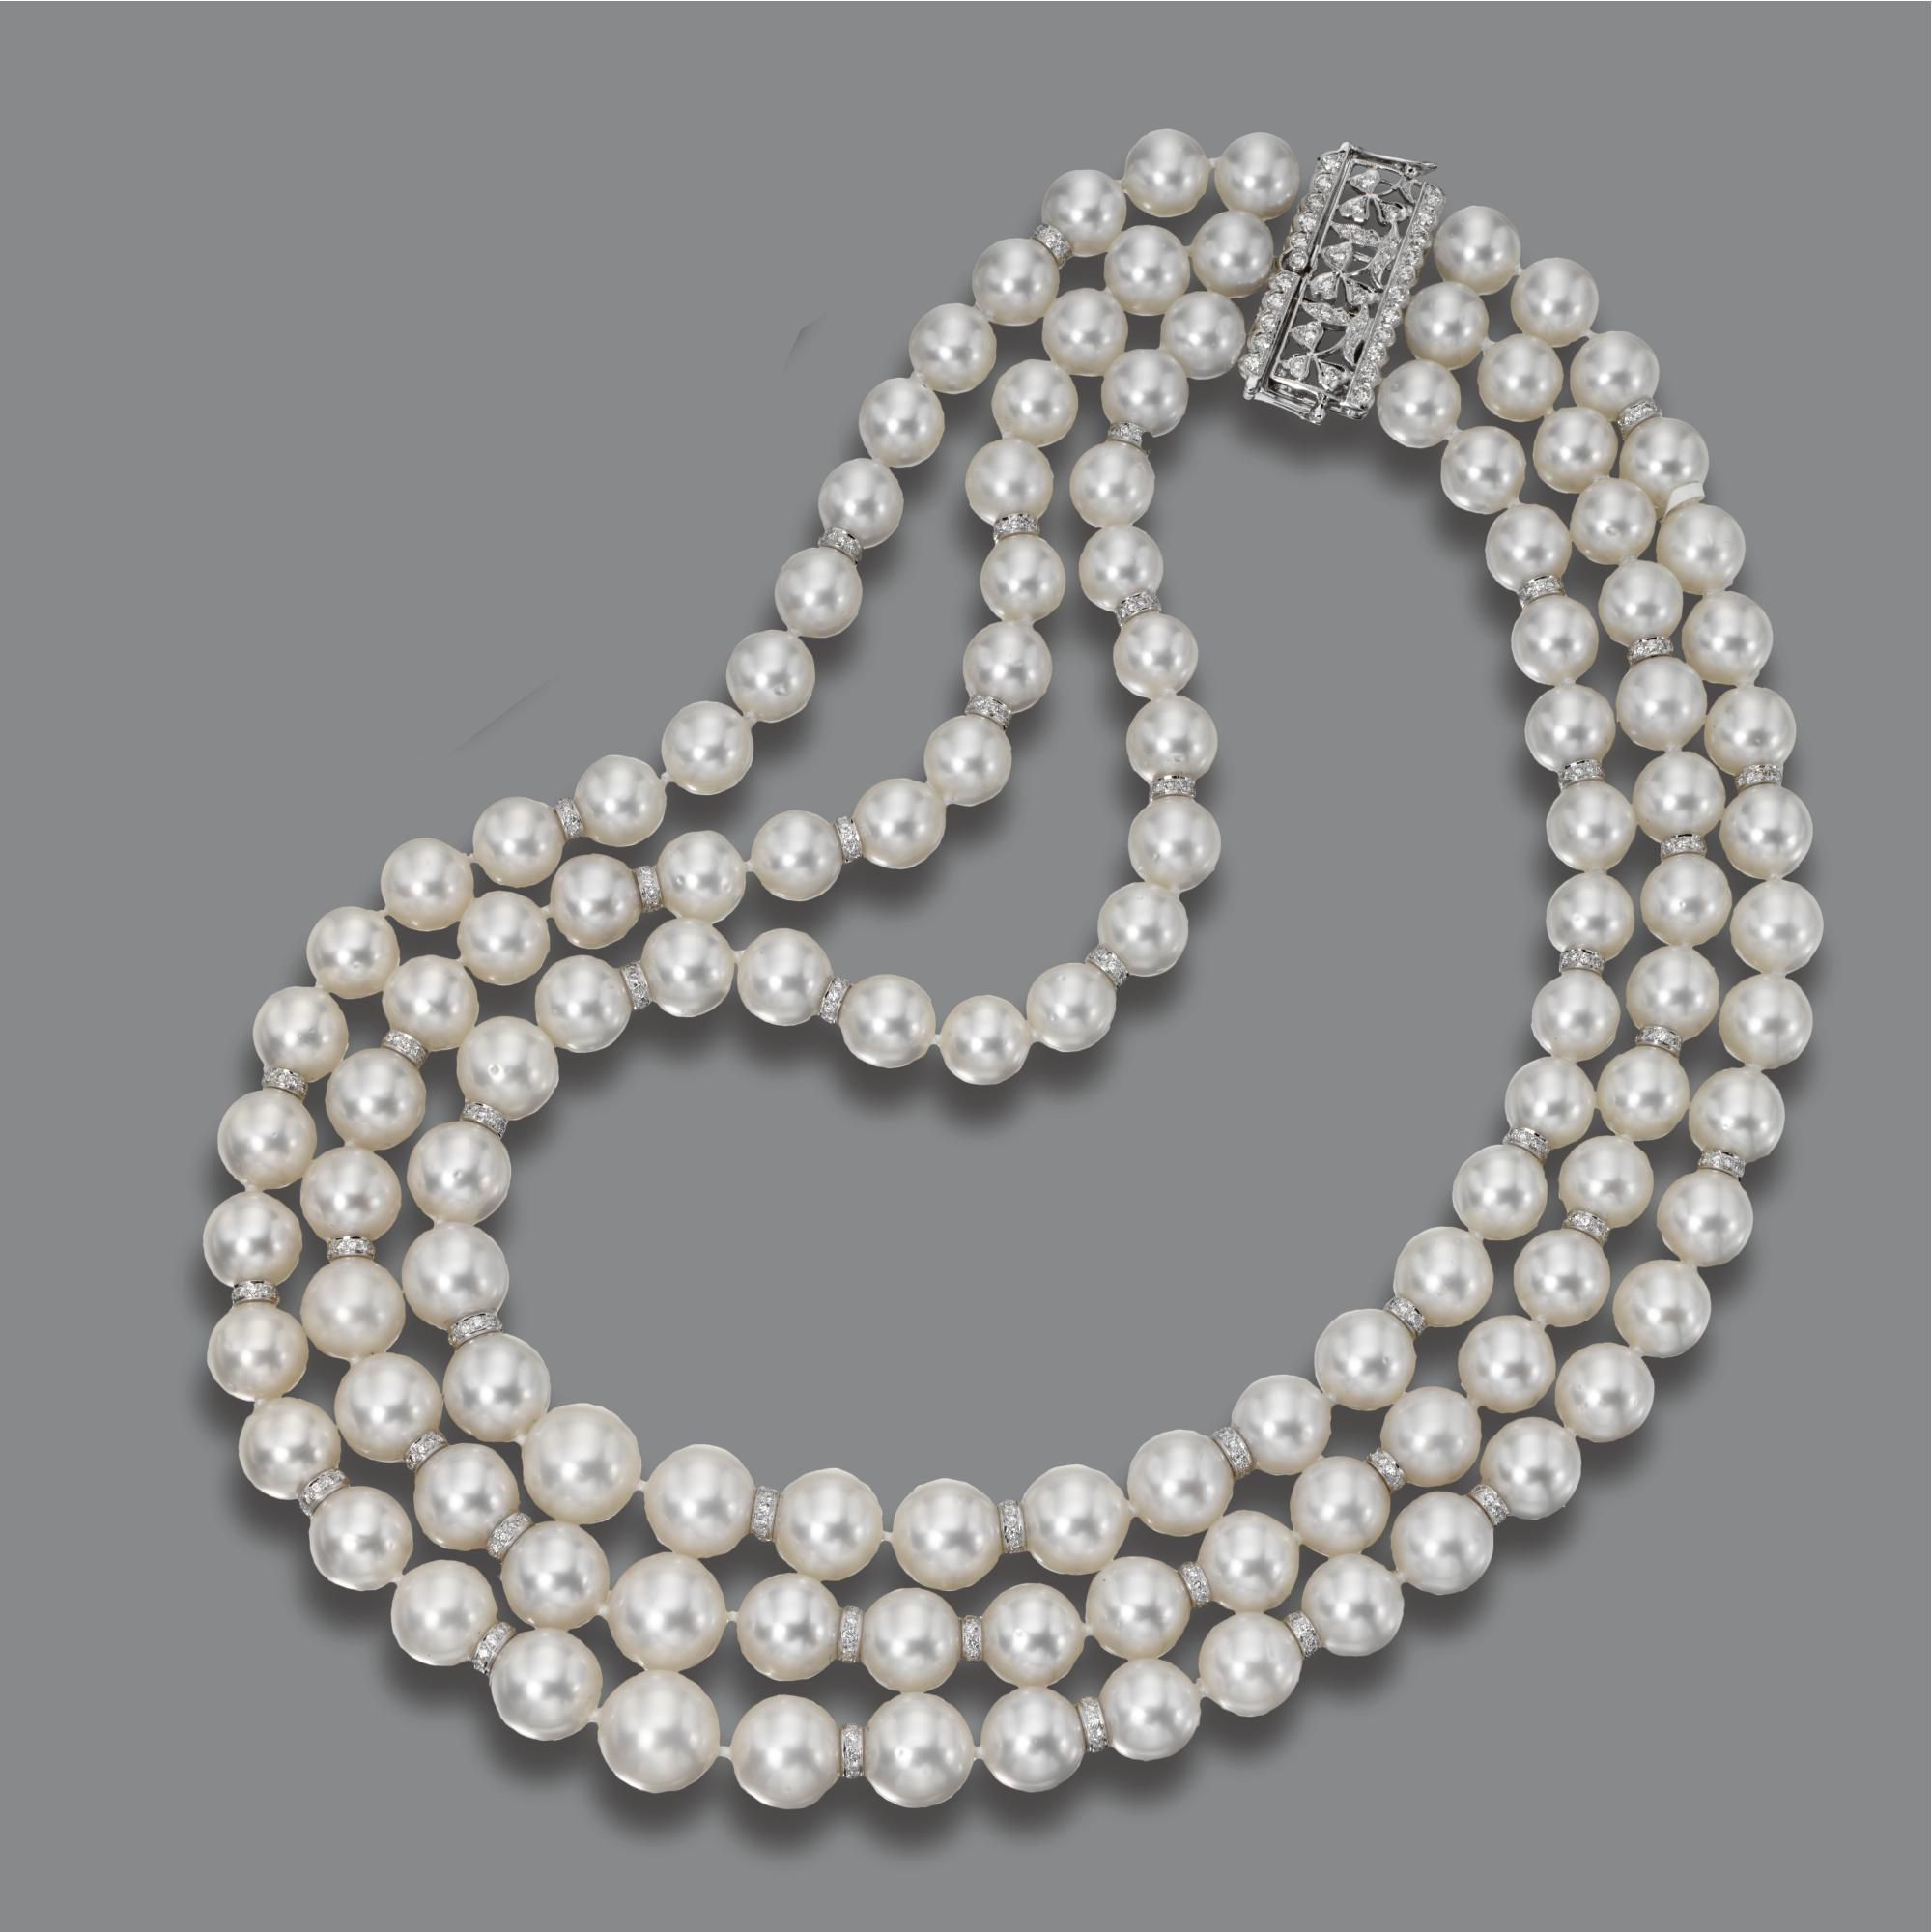 TRIPLE-STRAND CULTURED PEARL AND DIAMOND NECKLACE The slightly graduated rows strung with cultured pearls measuring approximately 9.1 to 12.6 mm., spaced by rondelles set with round diamonds, the openwork rectangular clasp also set with small round diamonds, altogether weighing approximately 4.30 carats, mounted in 18 karat white gold, length approximately 16 to 19½ inches.